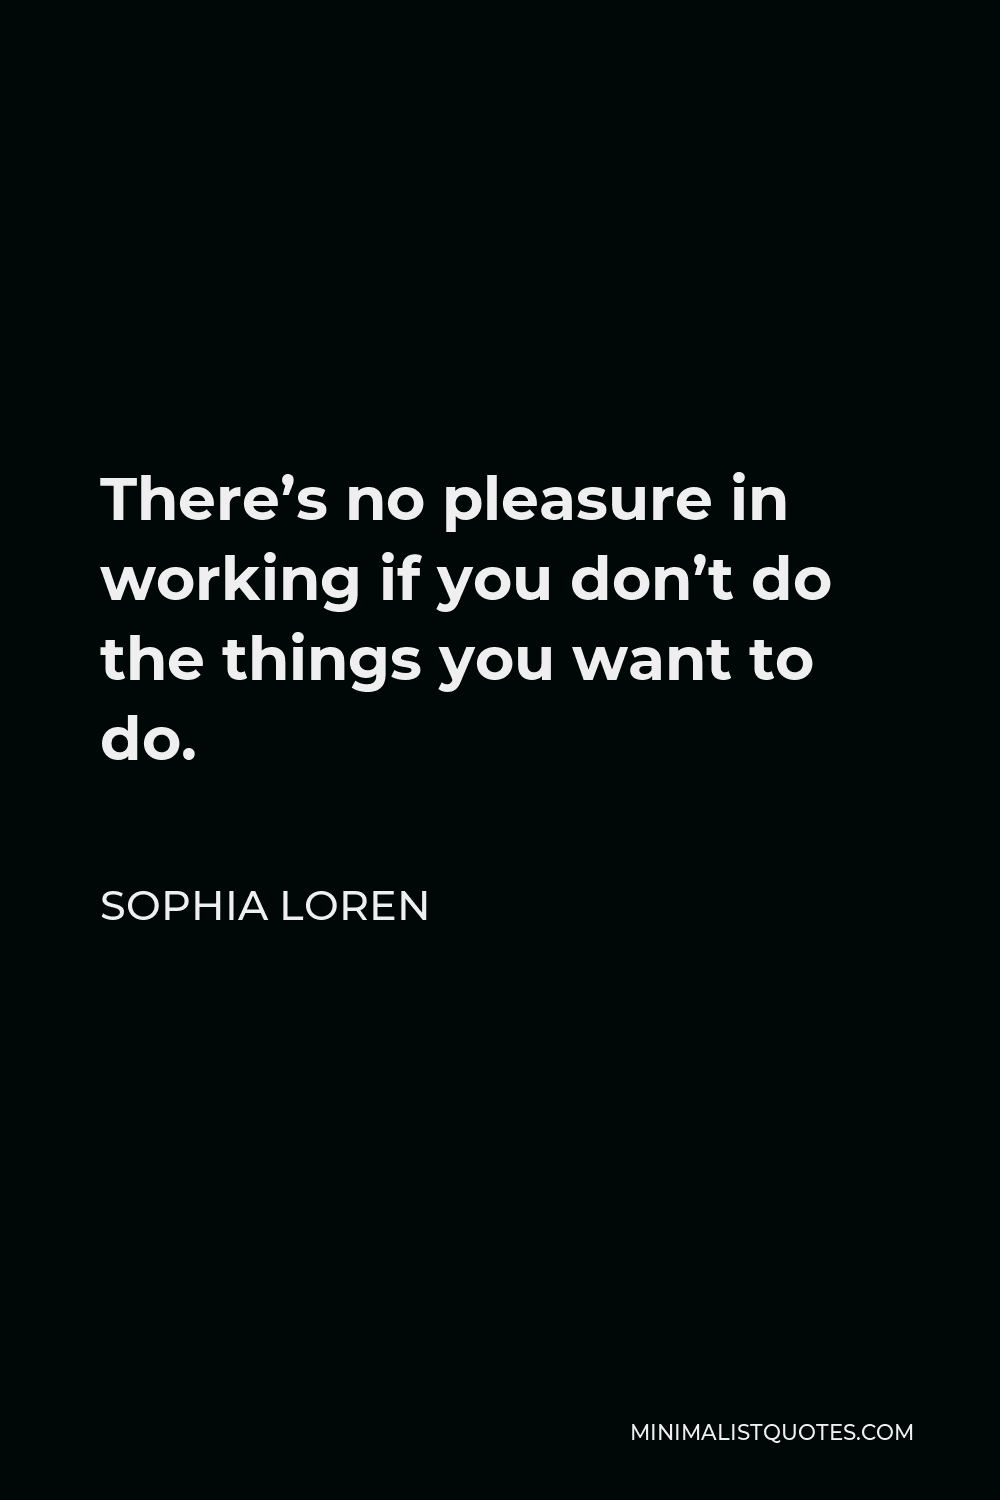 Sophia Loren Quote - There's no pleasure in working if you don't do the things you want to do.